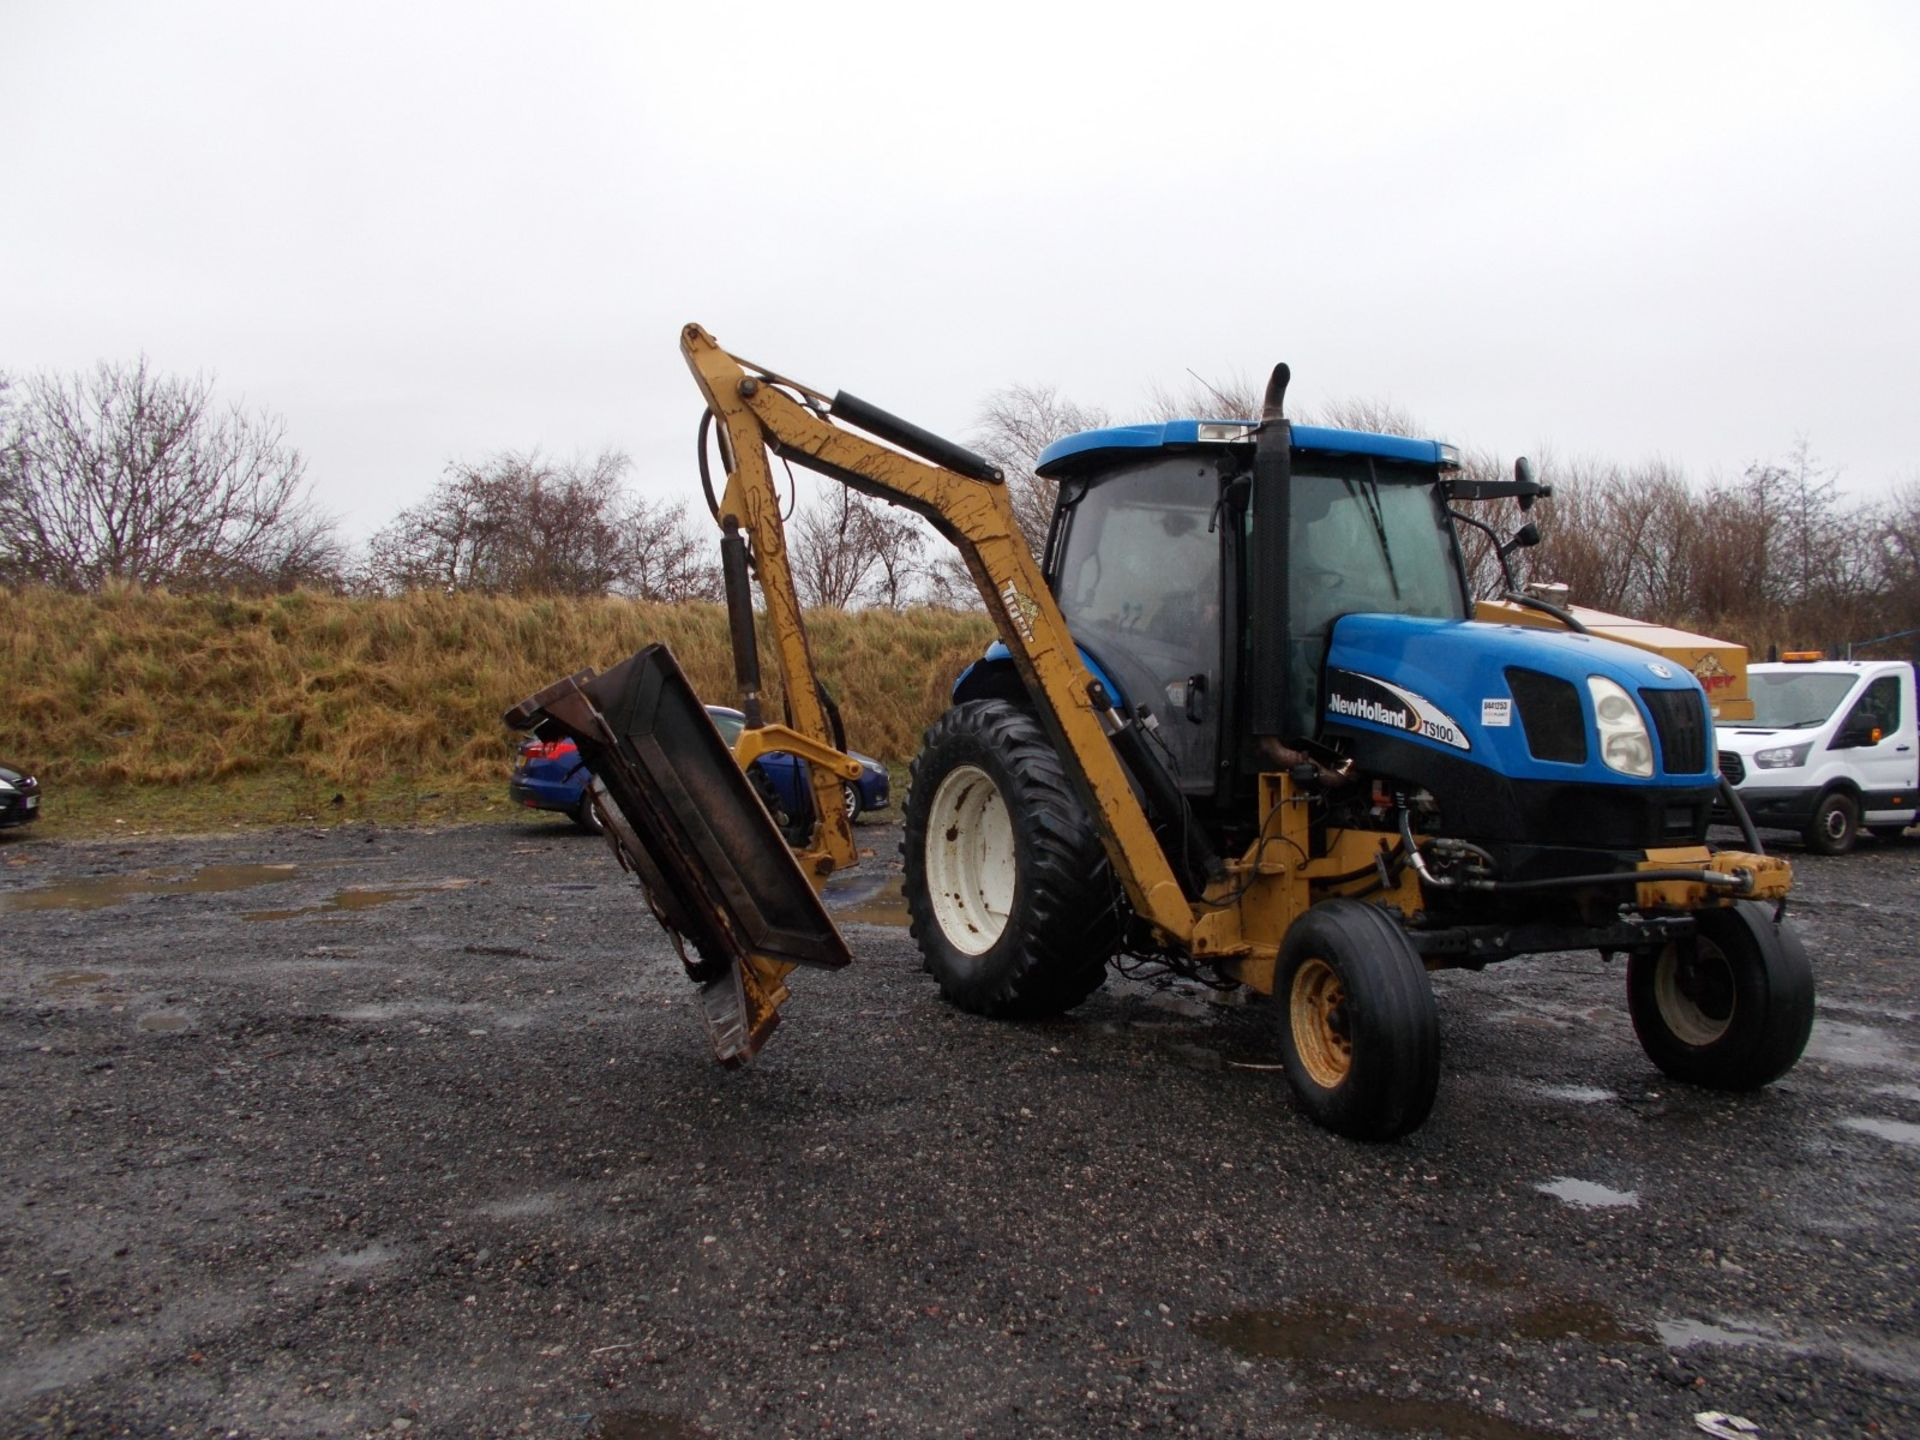 2003 NEW HOLLAND TS100A TRACTOR WITH MOWER ATTACHMENT, 4.5 LITRE 100HP TURBO DIESEL *PLUS VAT* - Image 7 of 24